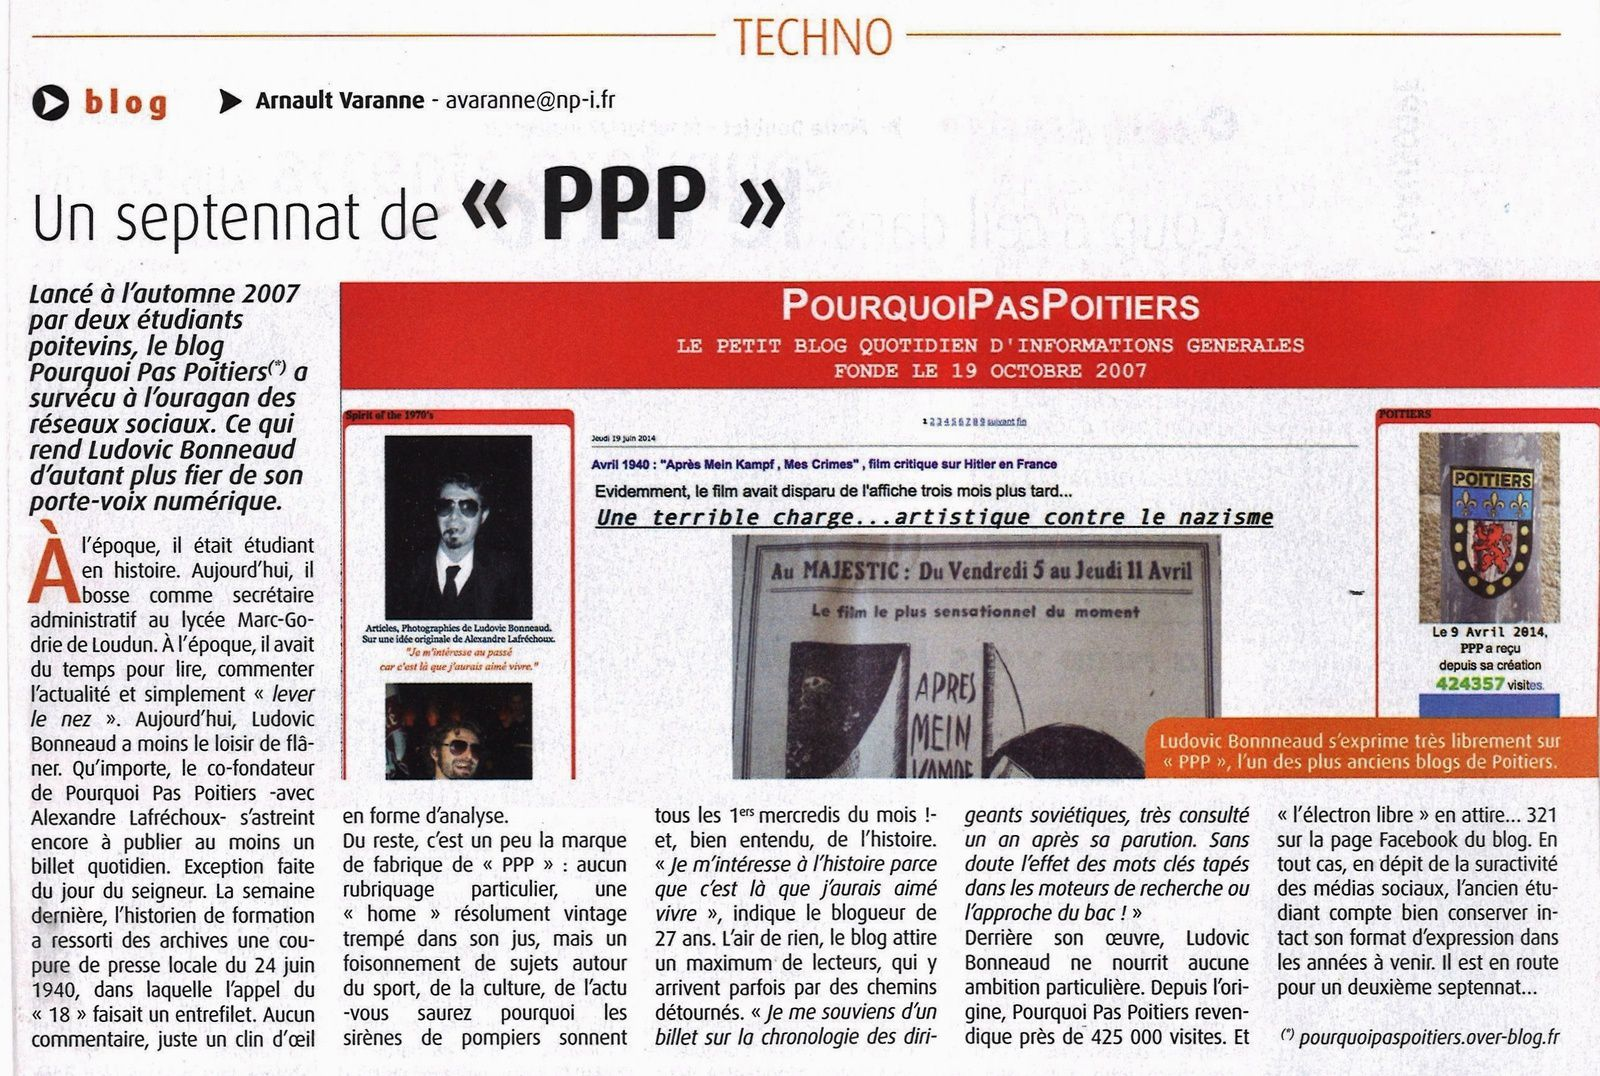 PPP 7 A POITIERS